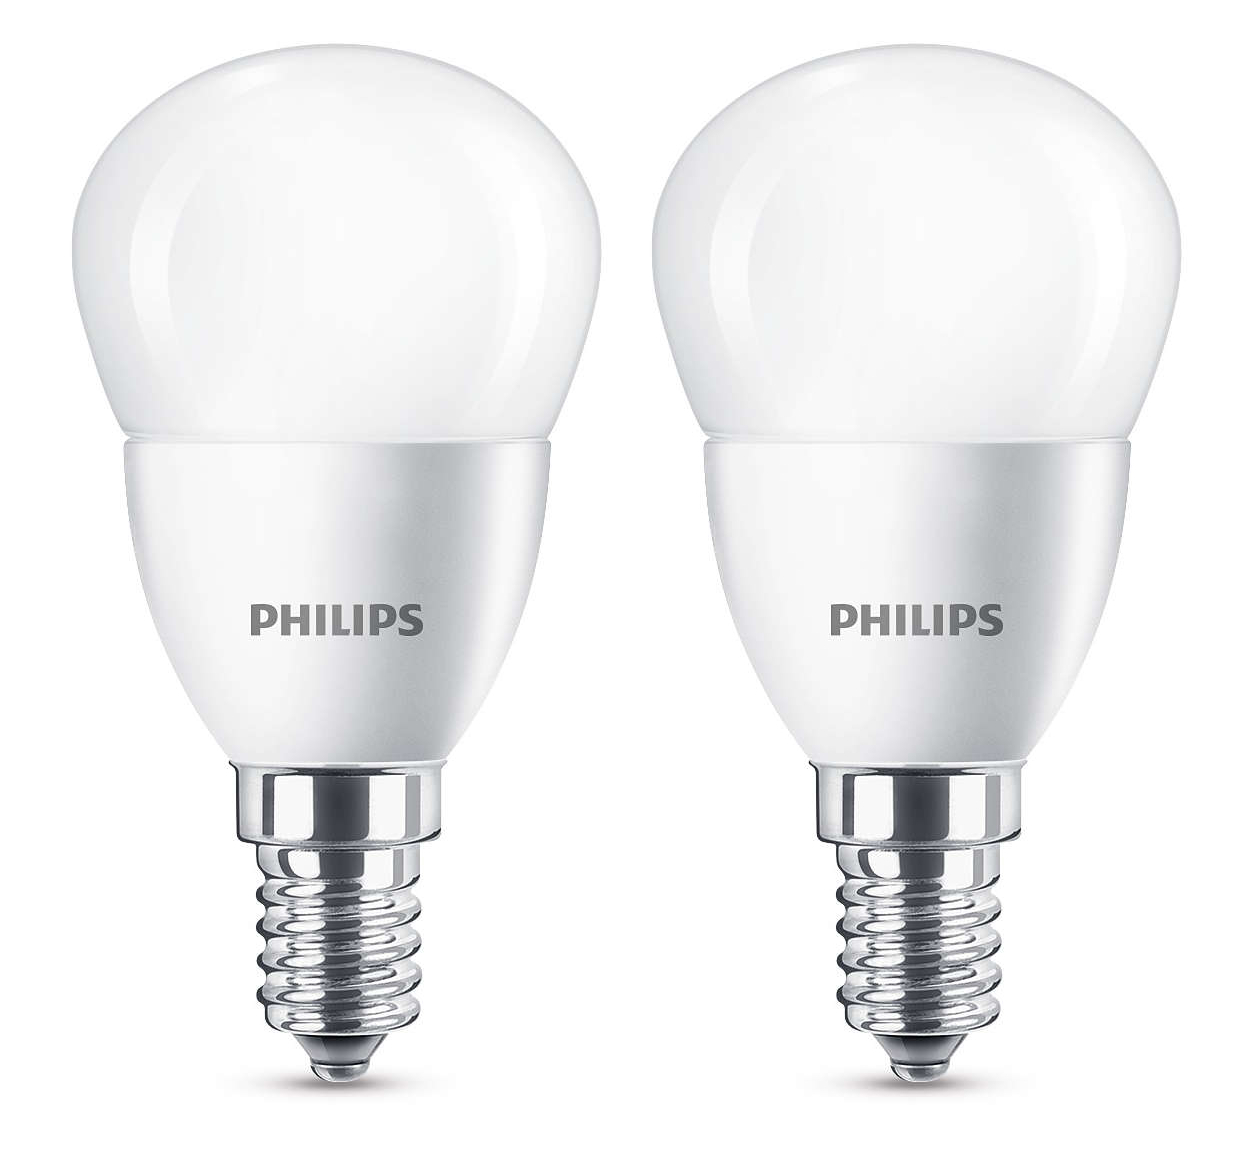 2 x philips led frosted e14 edison benennen 40w mini globus gl hbirnen 470lm ebay. Black Bedroom Furniture Sets. Home Design Ideas